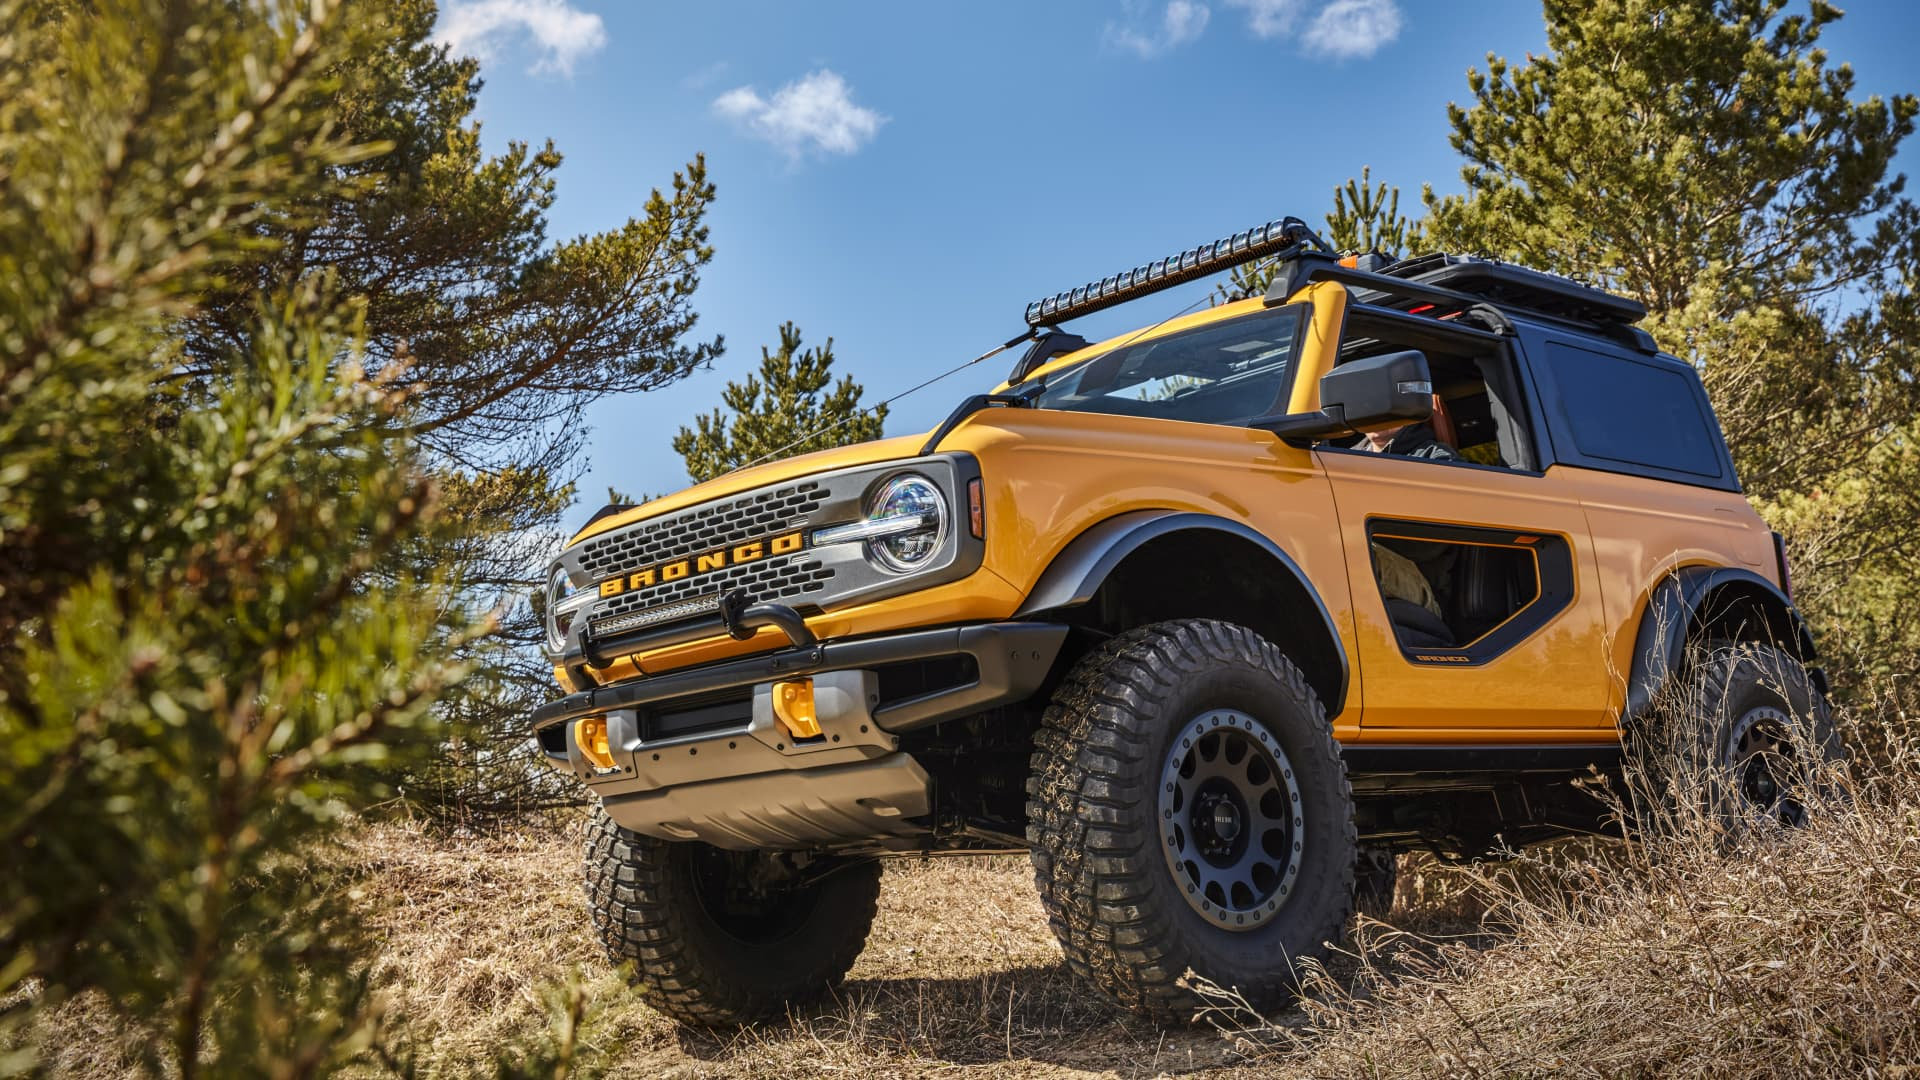 Ford is launching the 2021 Bronco with more than 200 factory-backed aftermarket accessories for more capability and personalization.